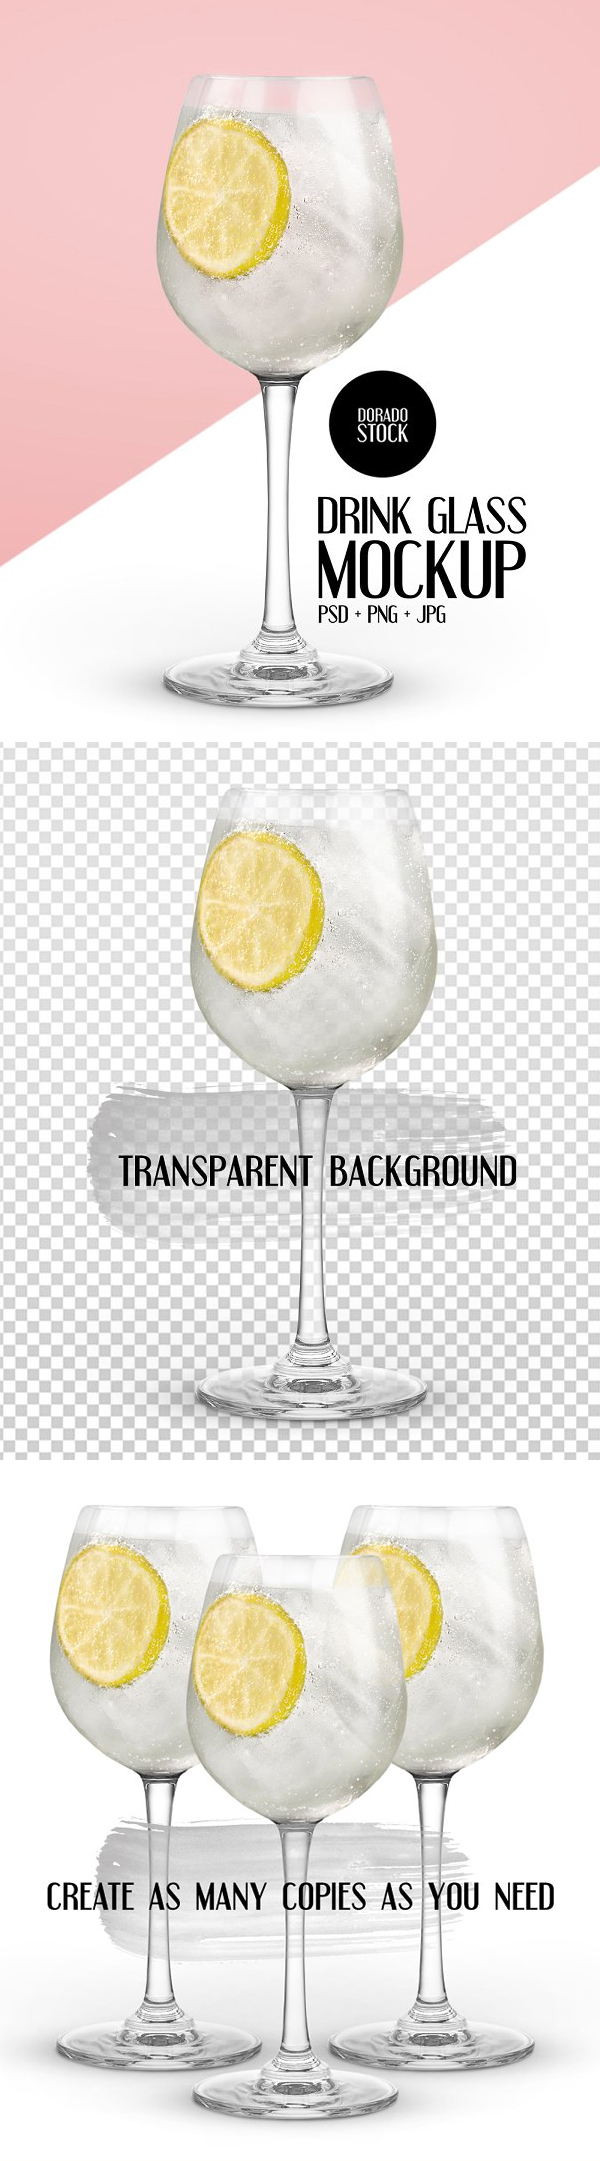 Isolated Drink Glass Mockup